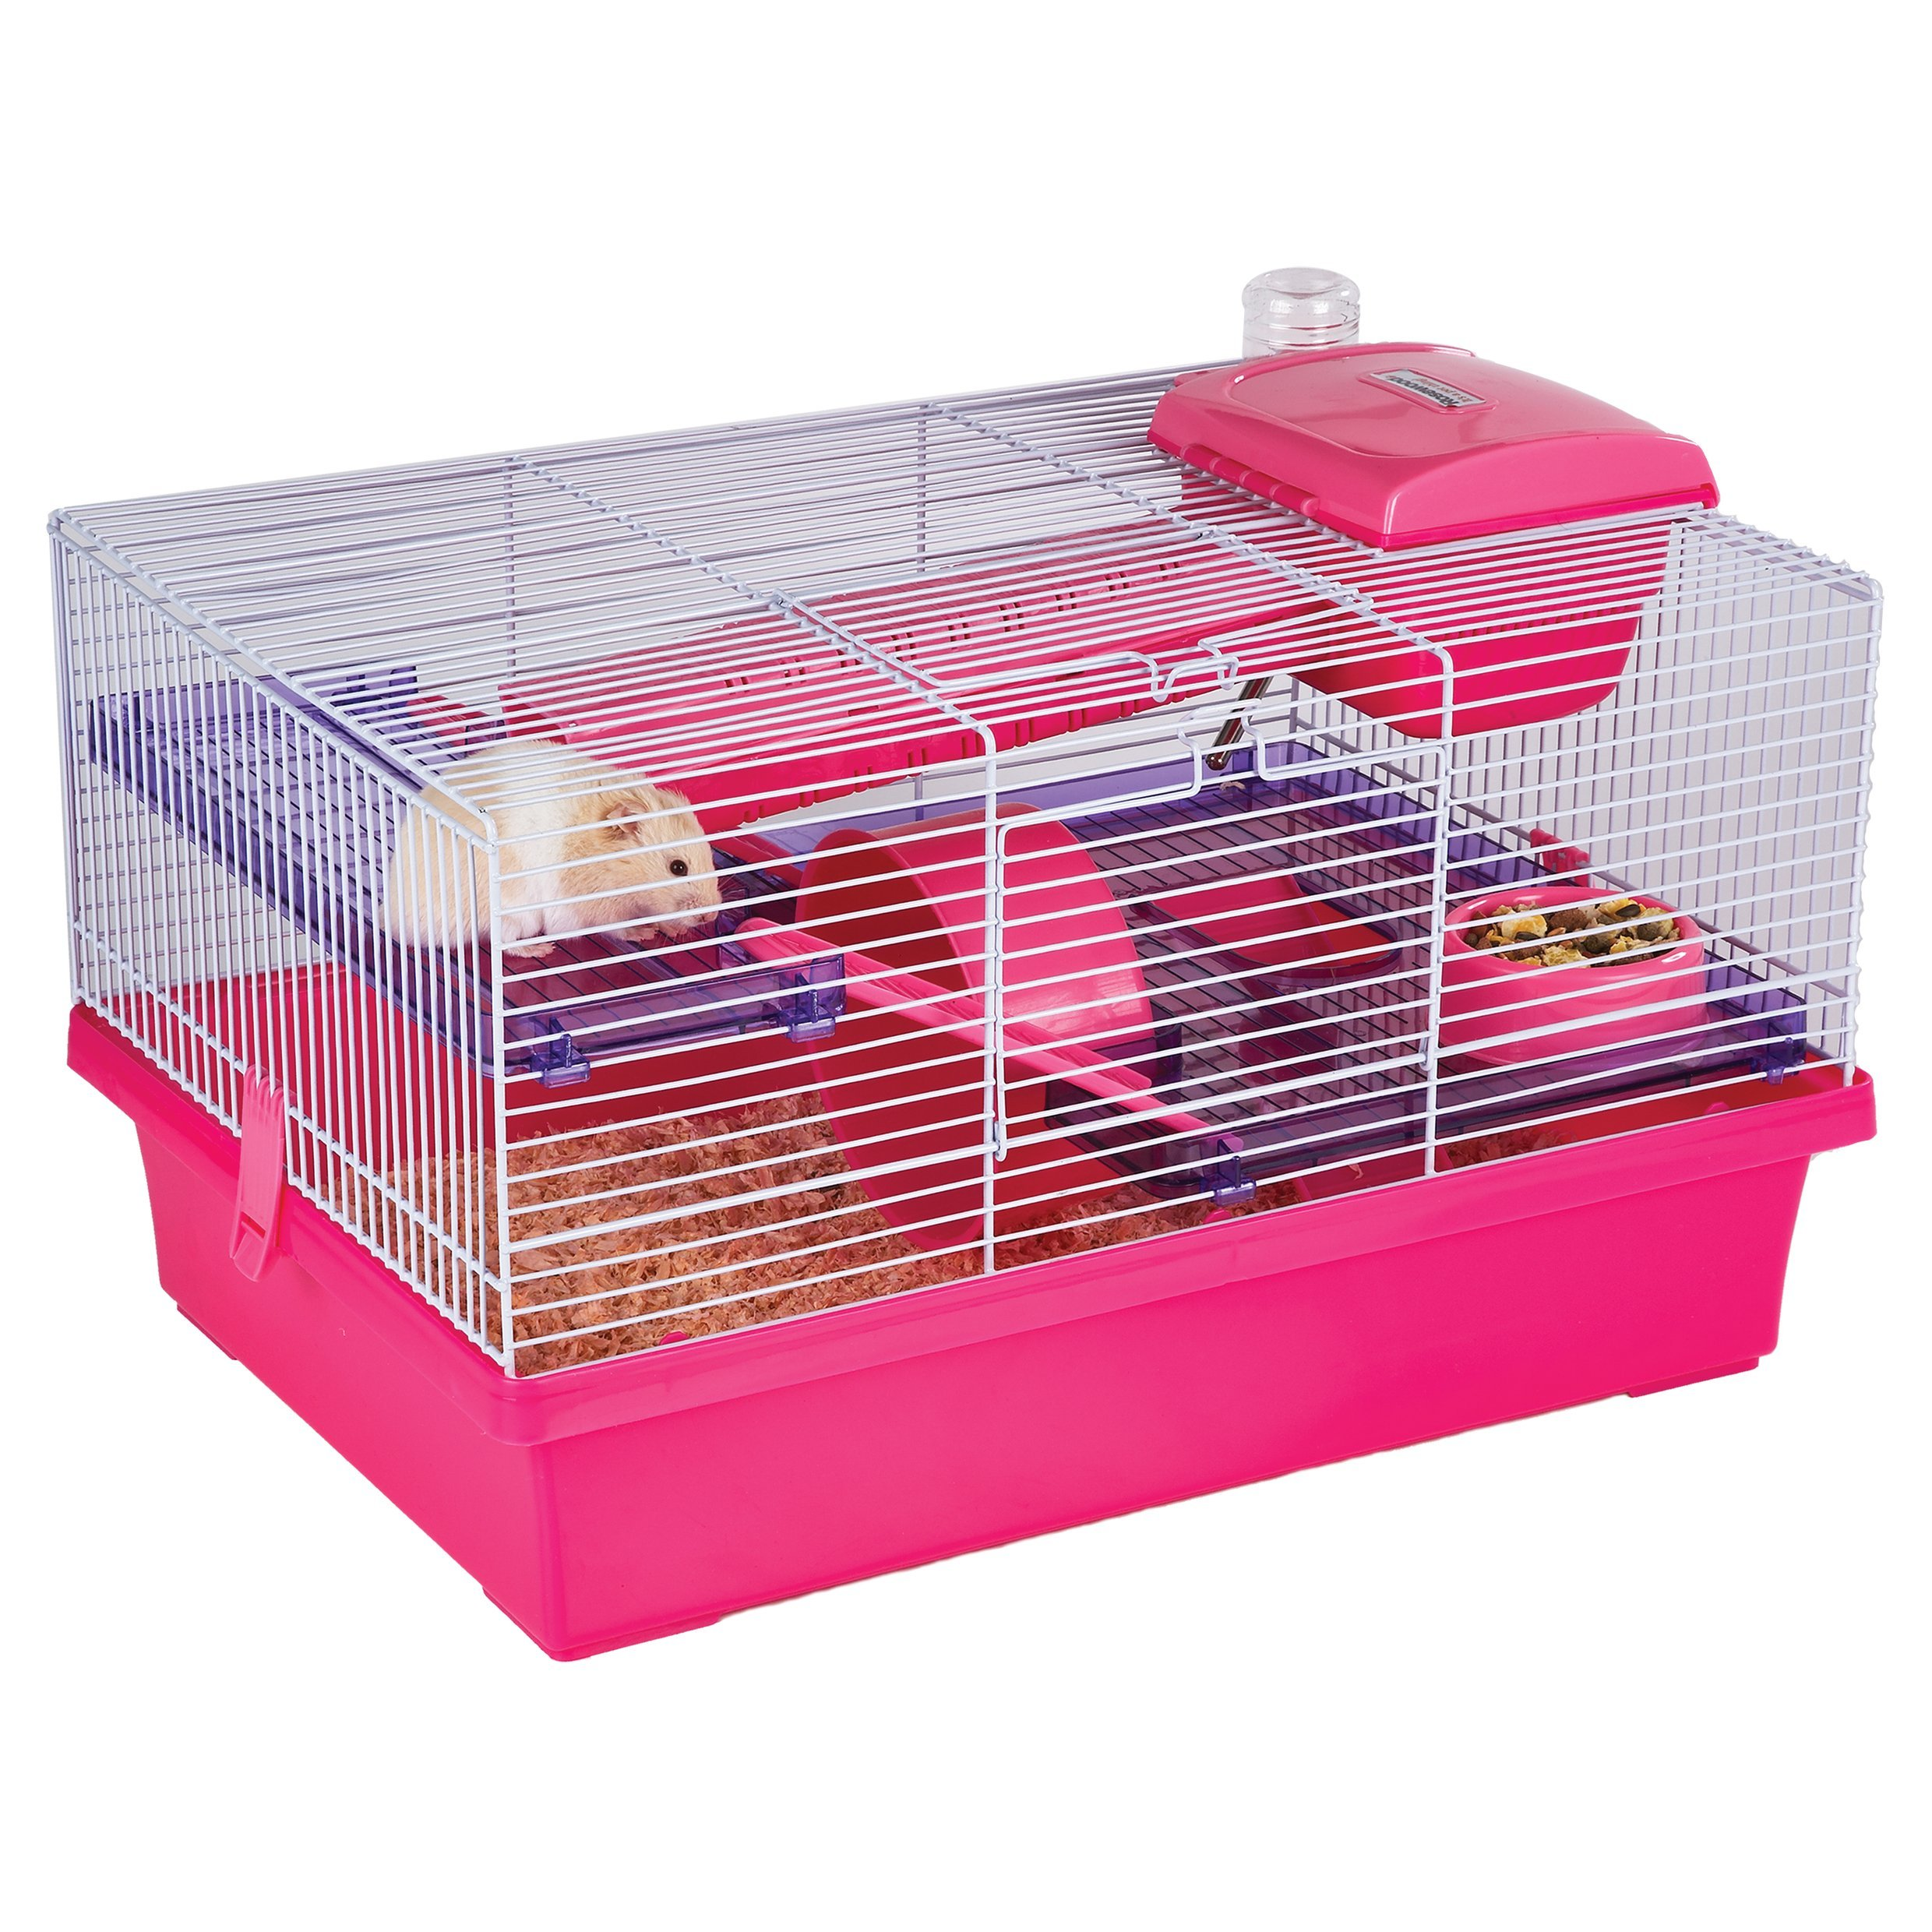 Pico Pink & Purple - Hamster & Small Animal Home/Cage by Rosewood Pet